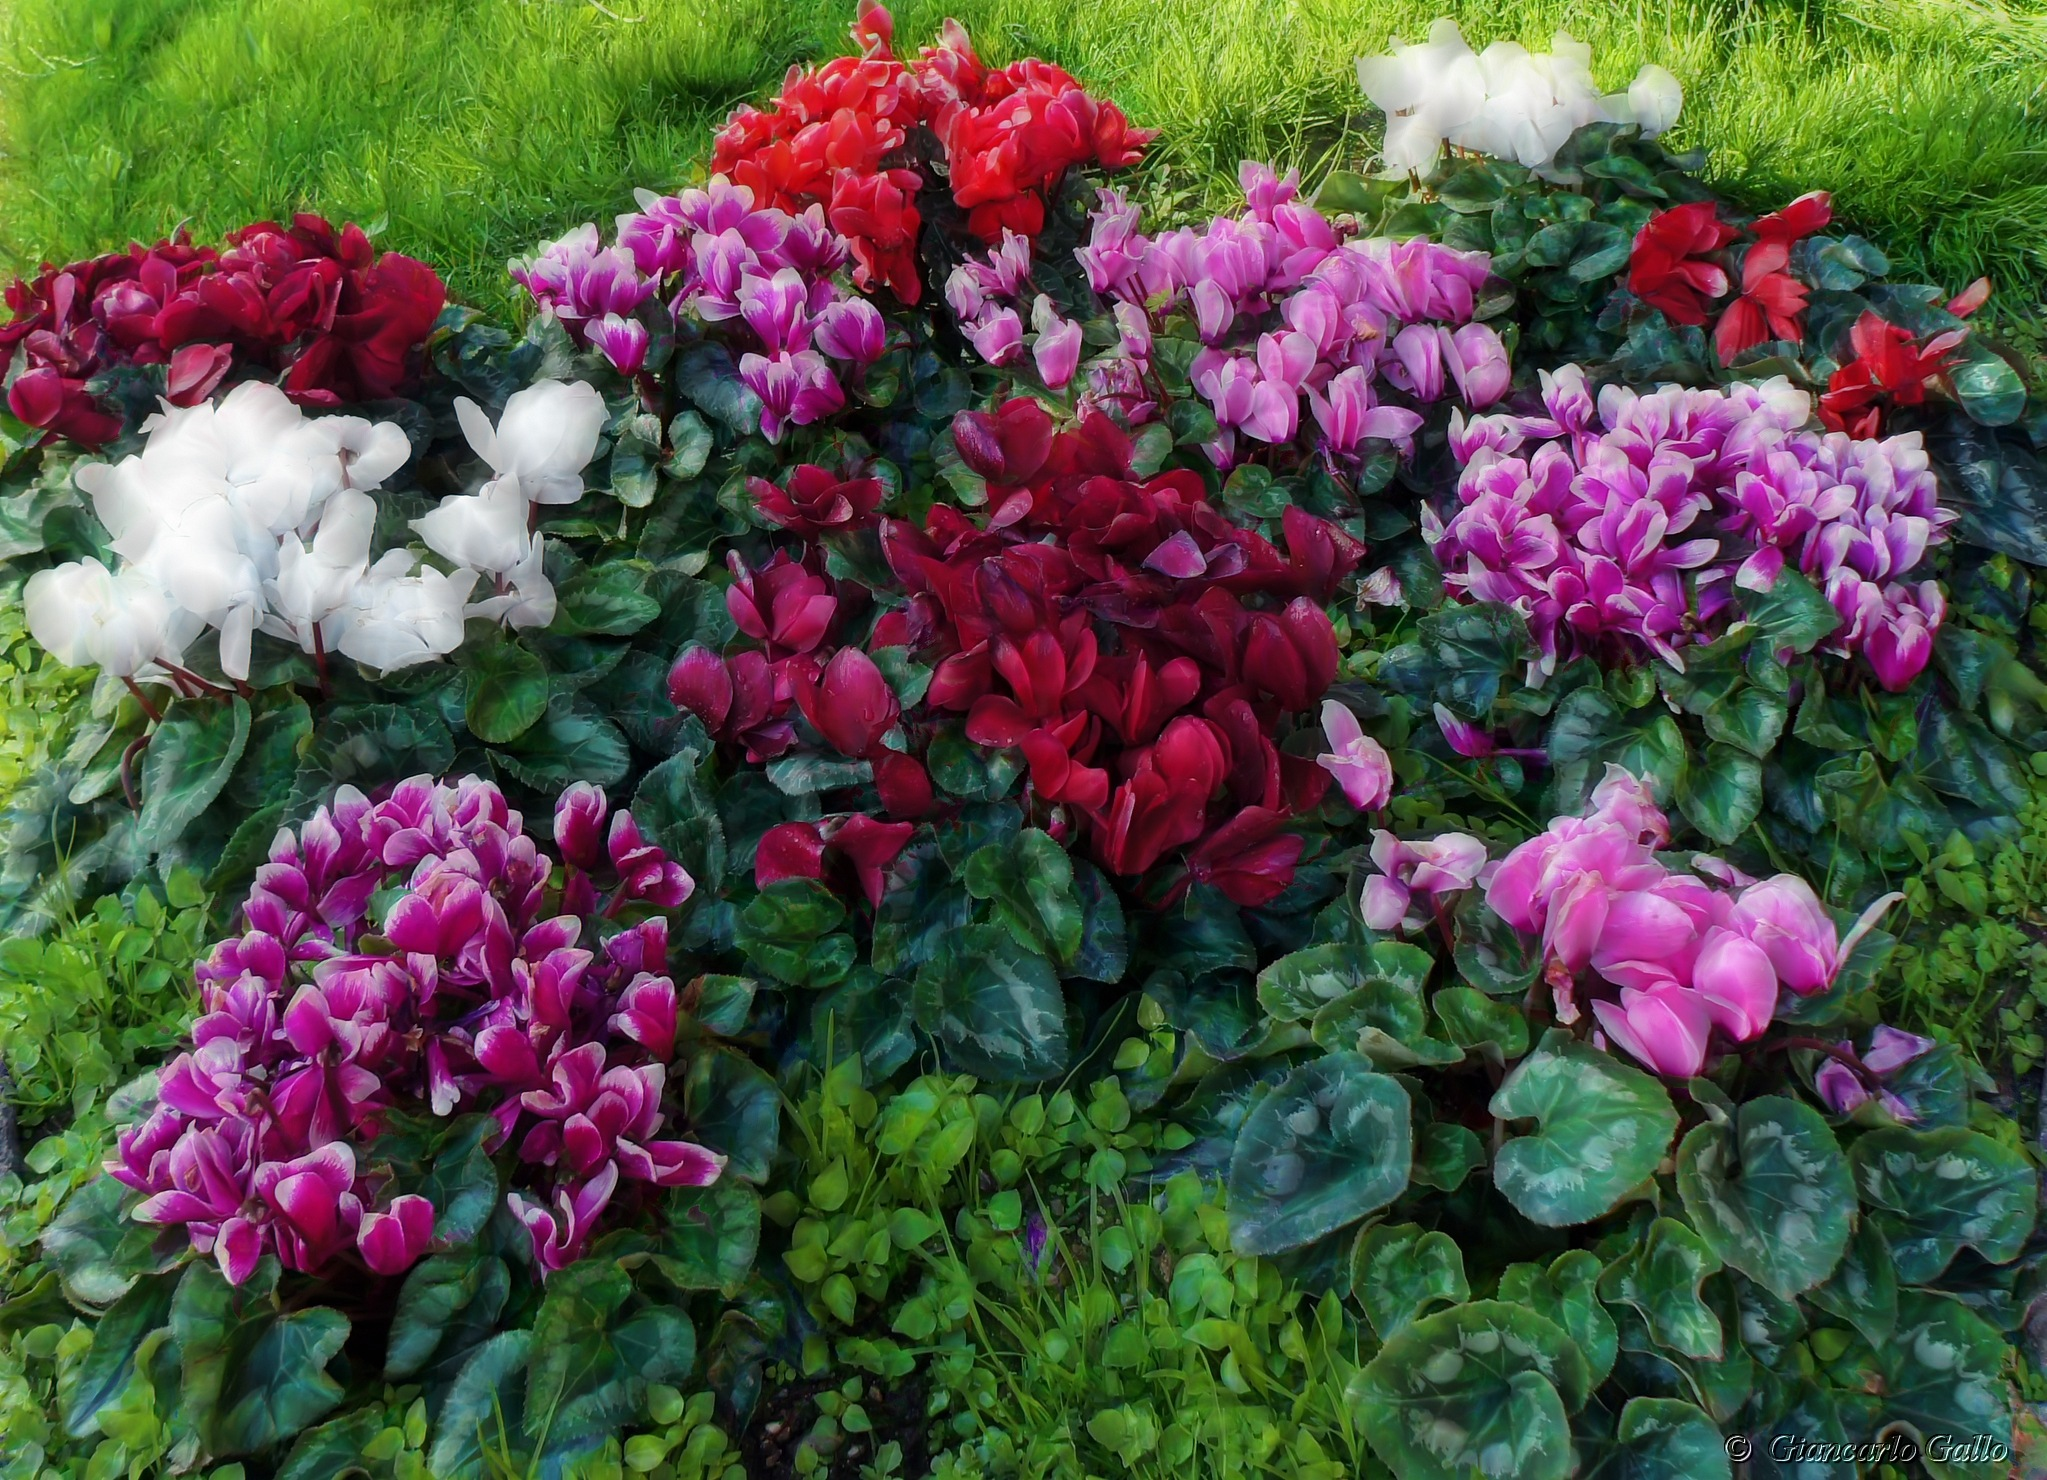 Group of cyclamen by Giancarlo Gallo